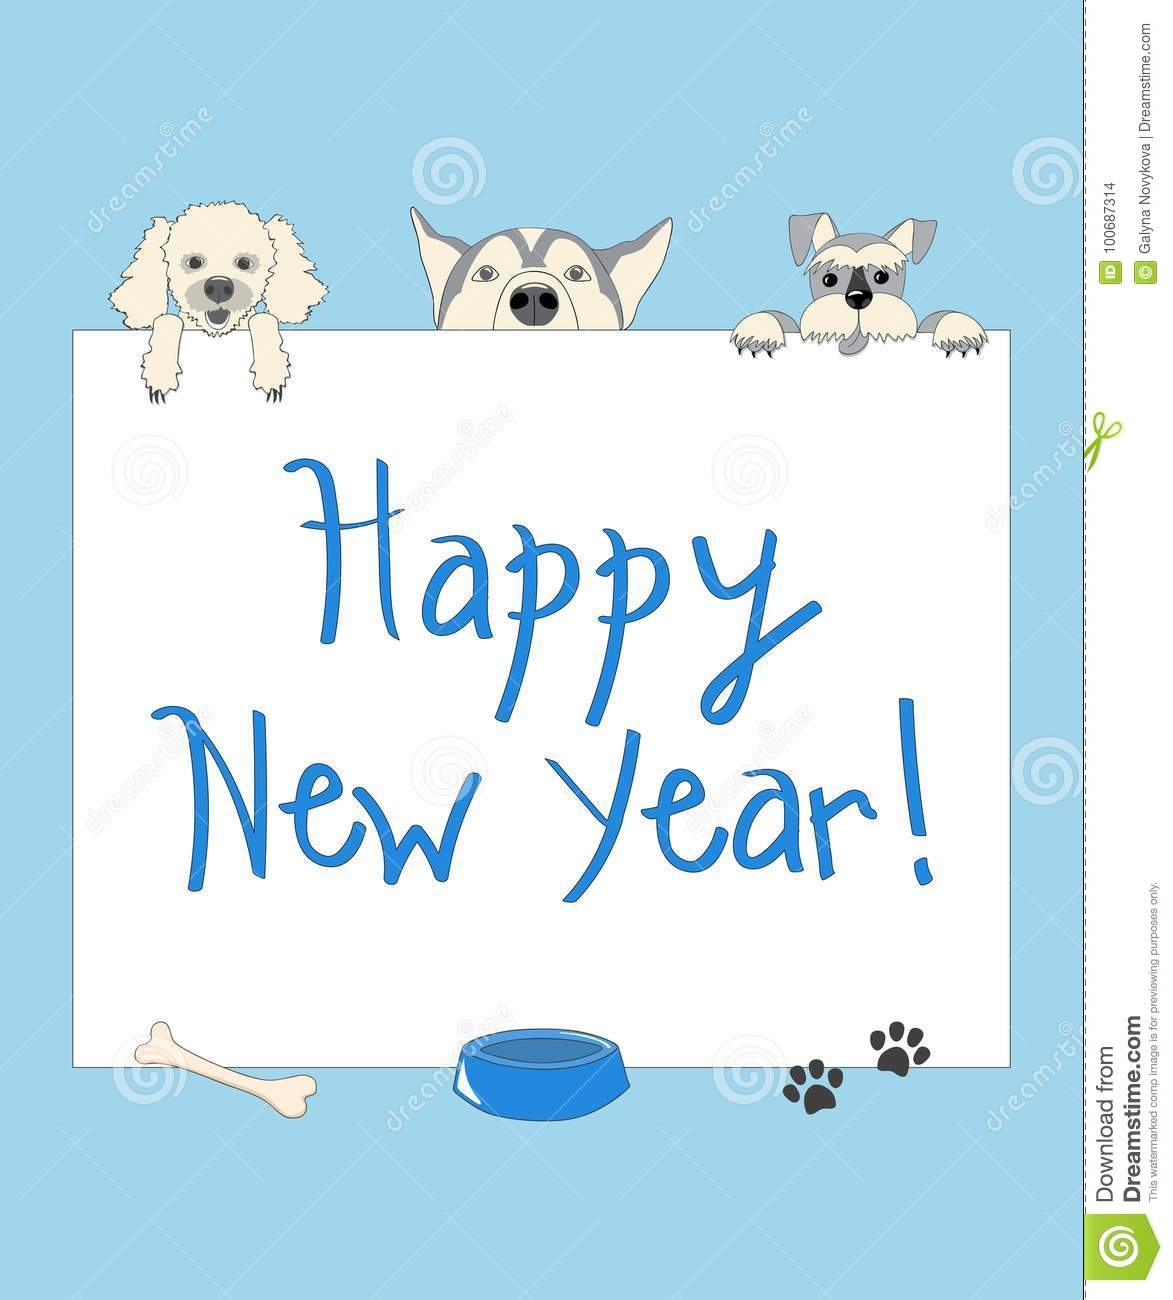 Funny New Year Blue Card With Cartoon Dogs Stock Vector ...